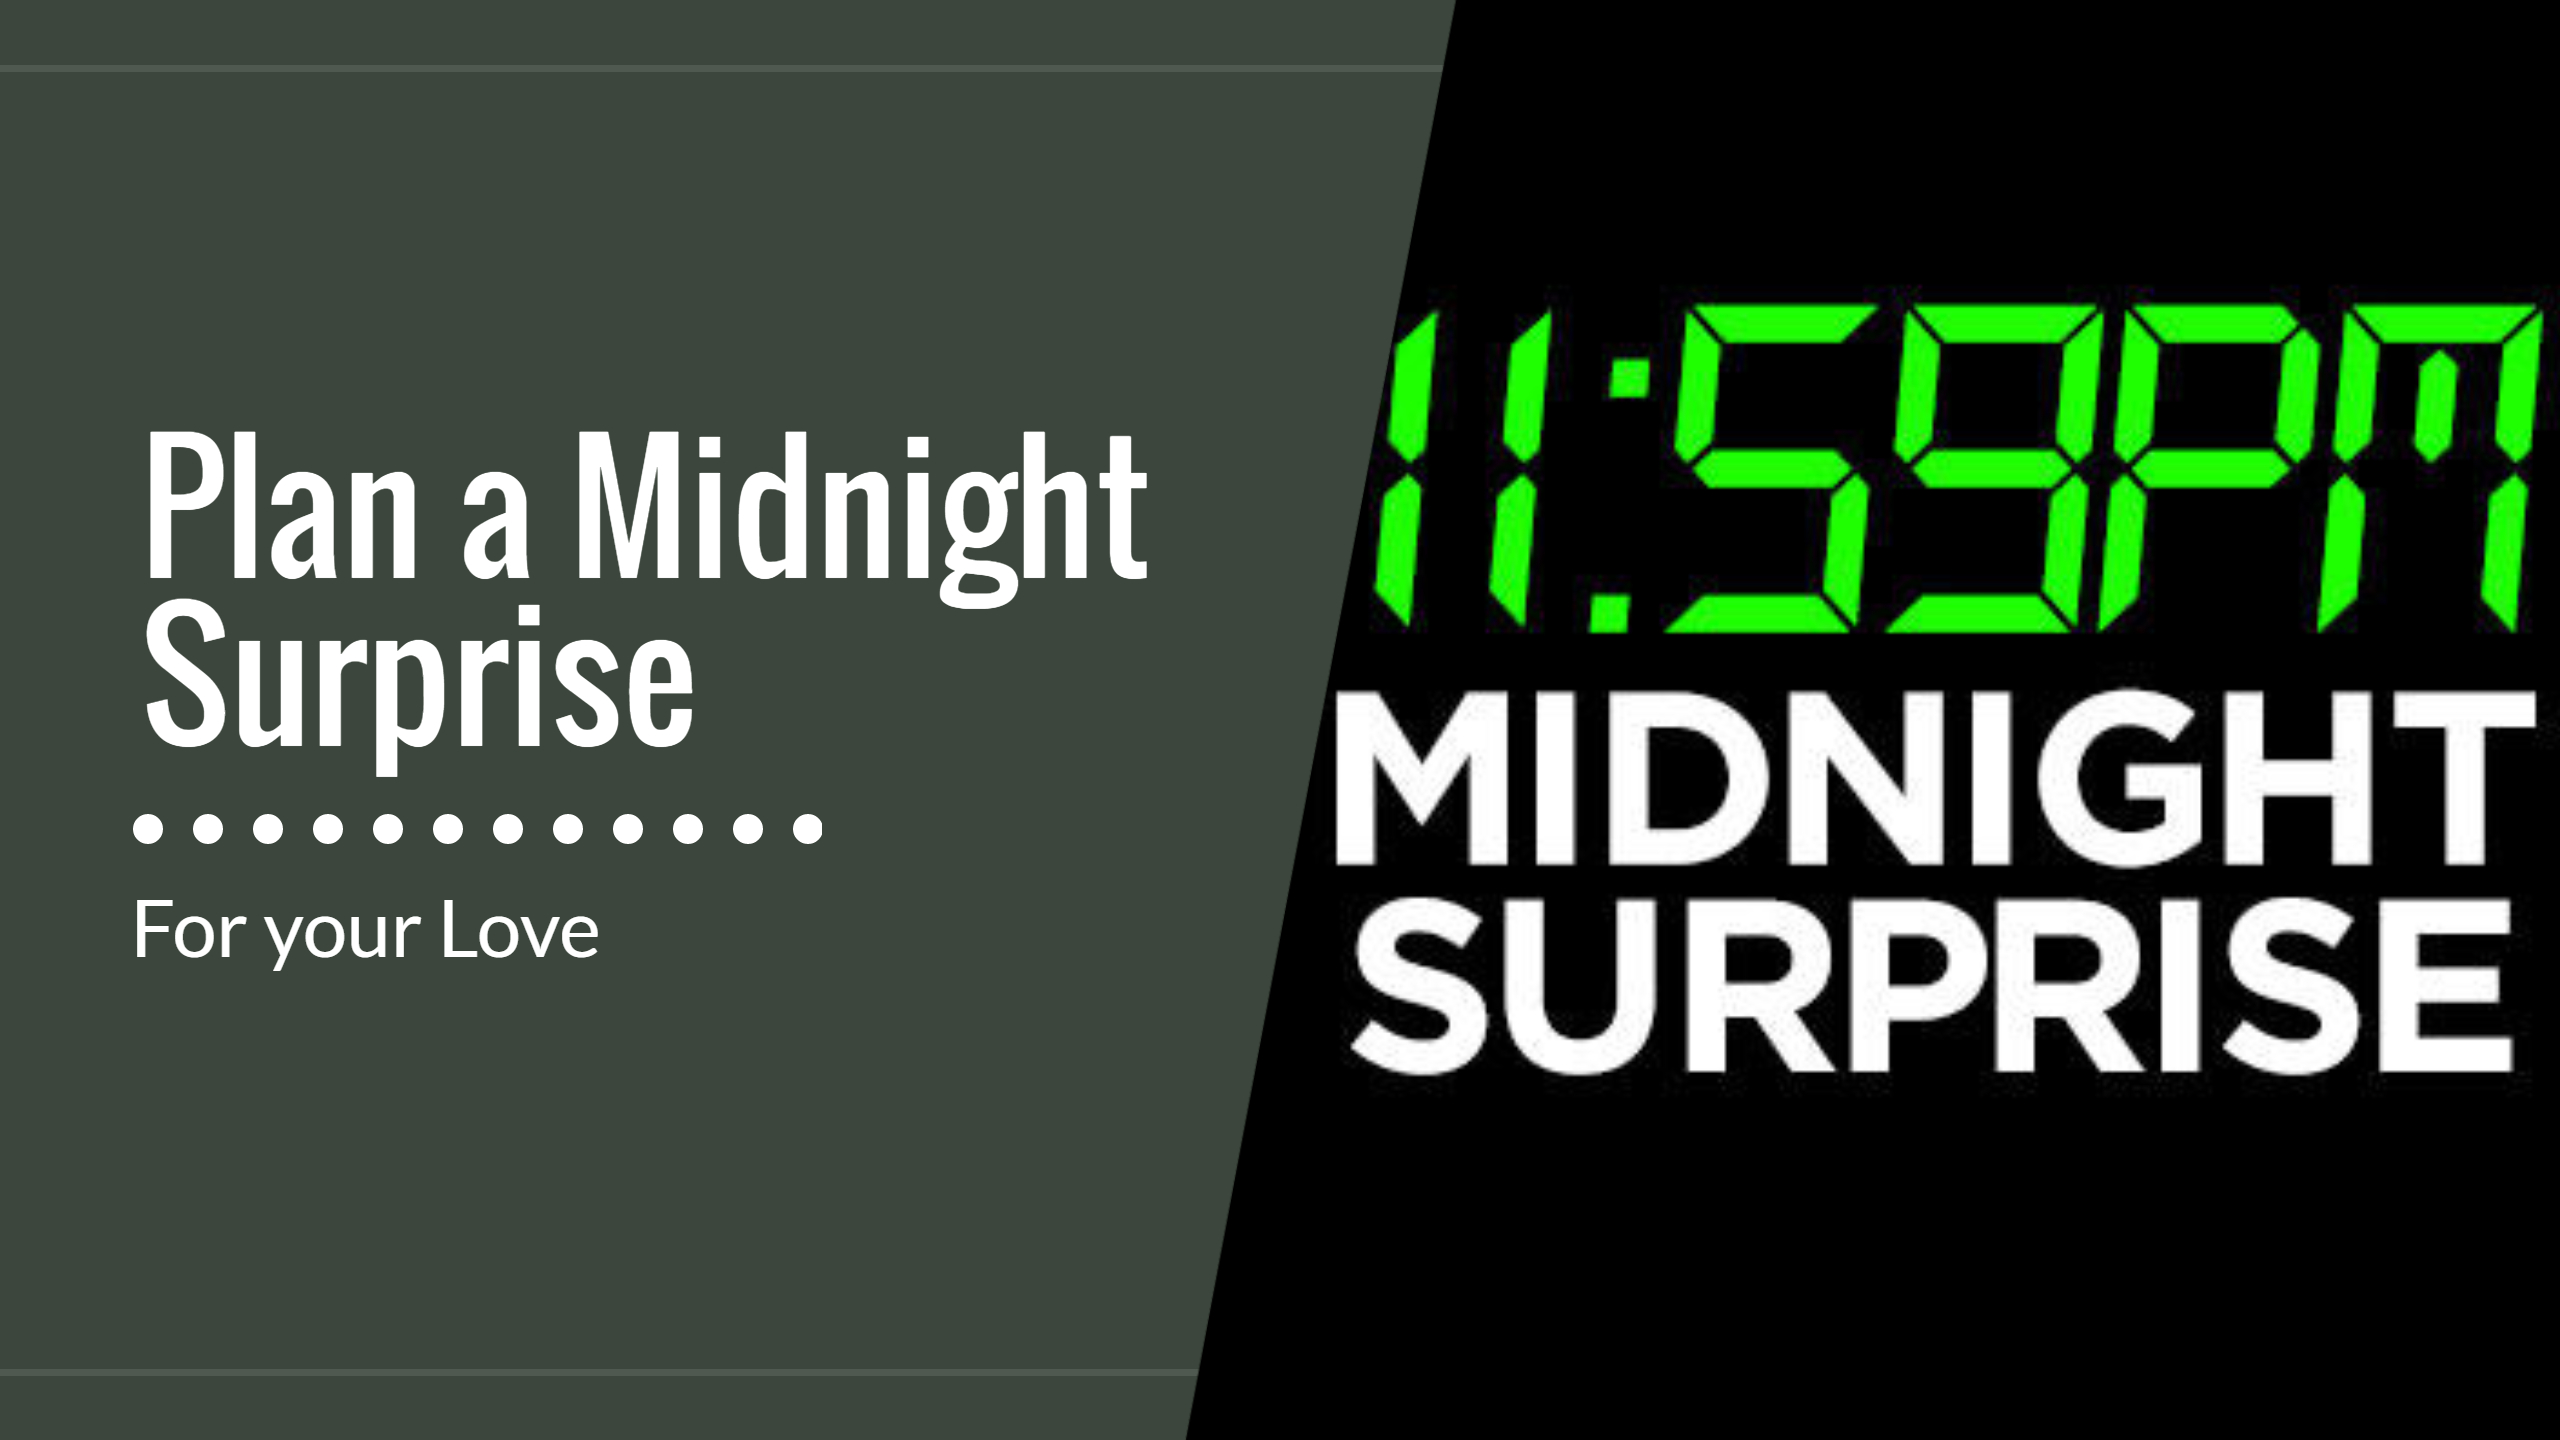 Midnight Surprice